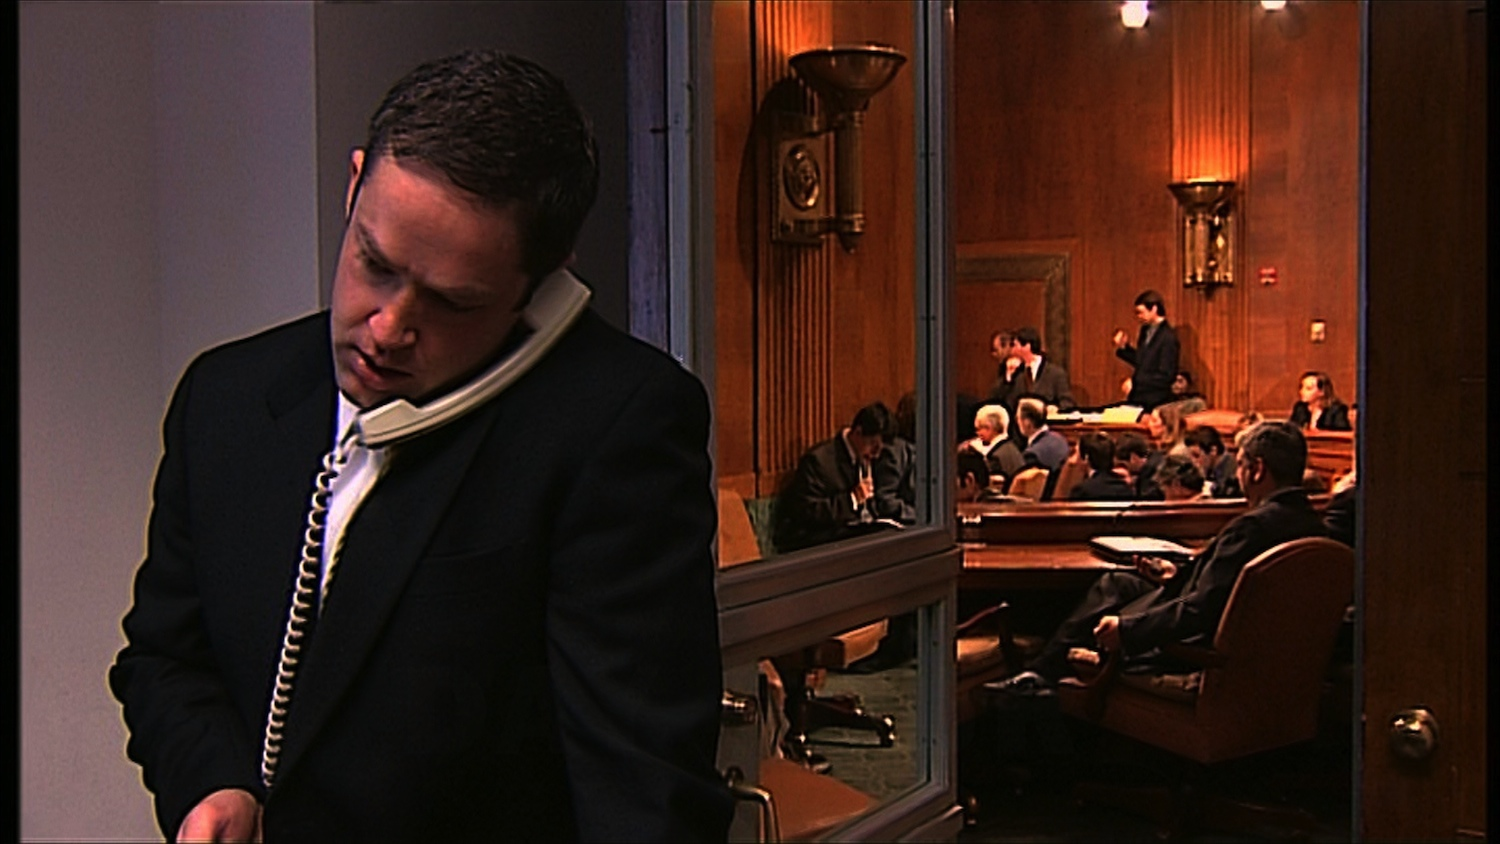 HDWN_11_HD_STILL_Doorway Hearing Room_Staffer on Phone 02.jpeg